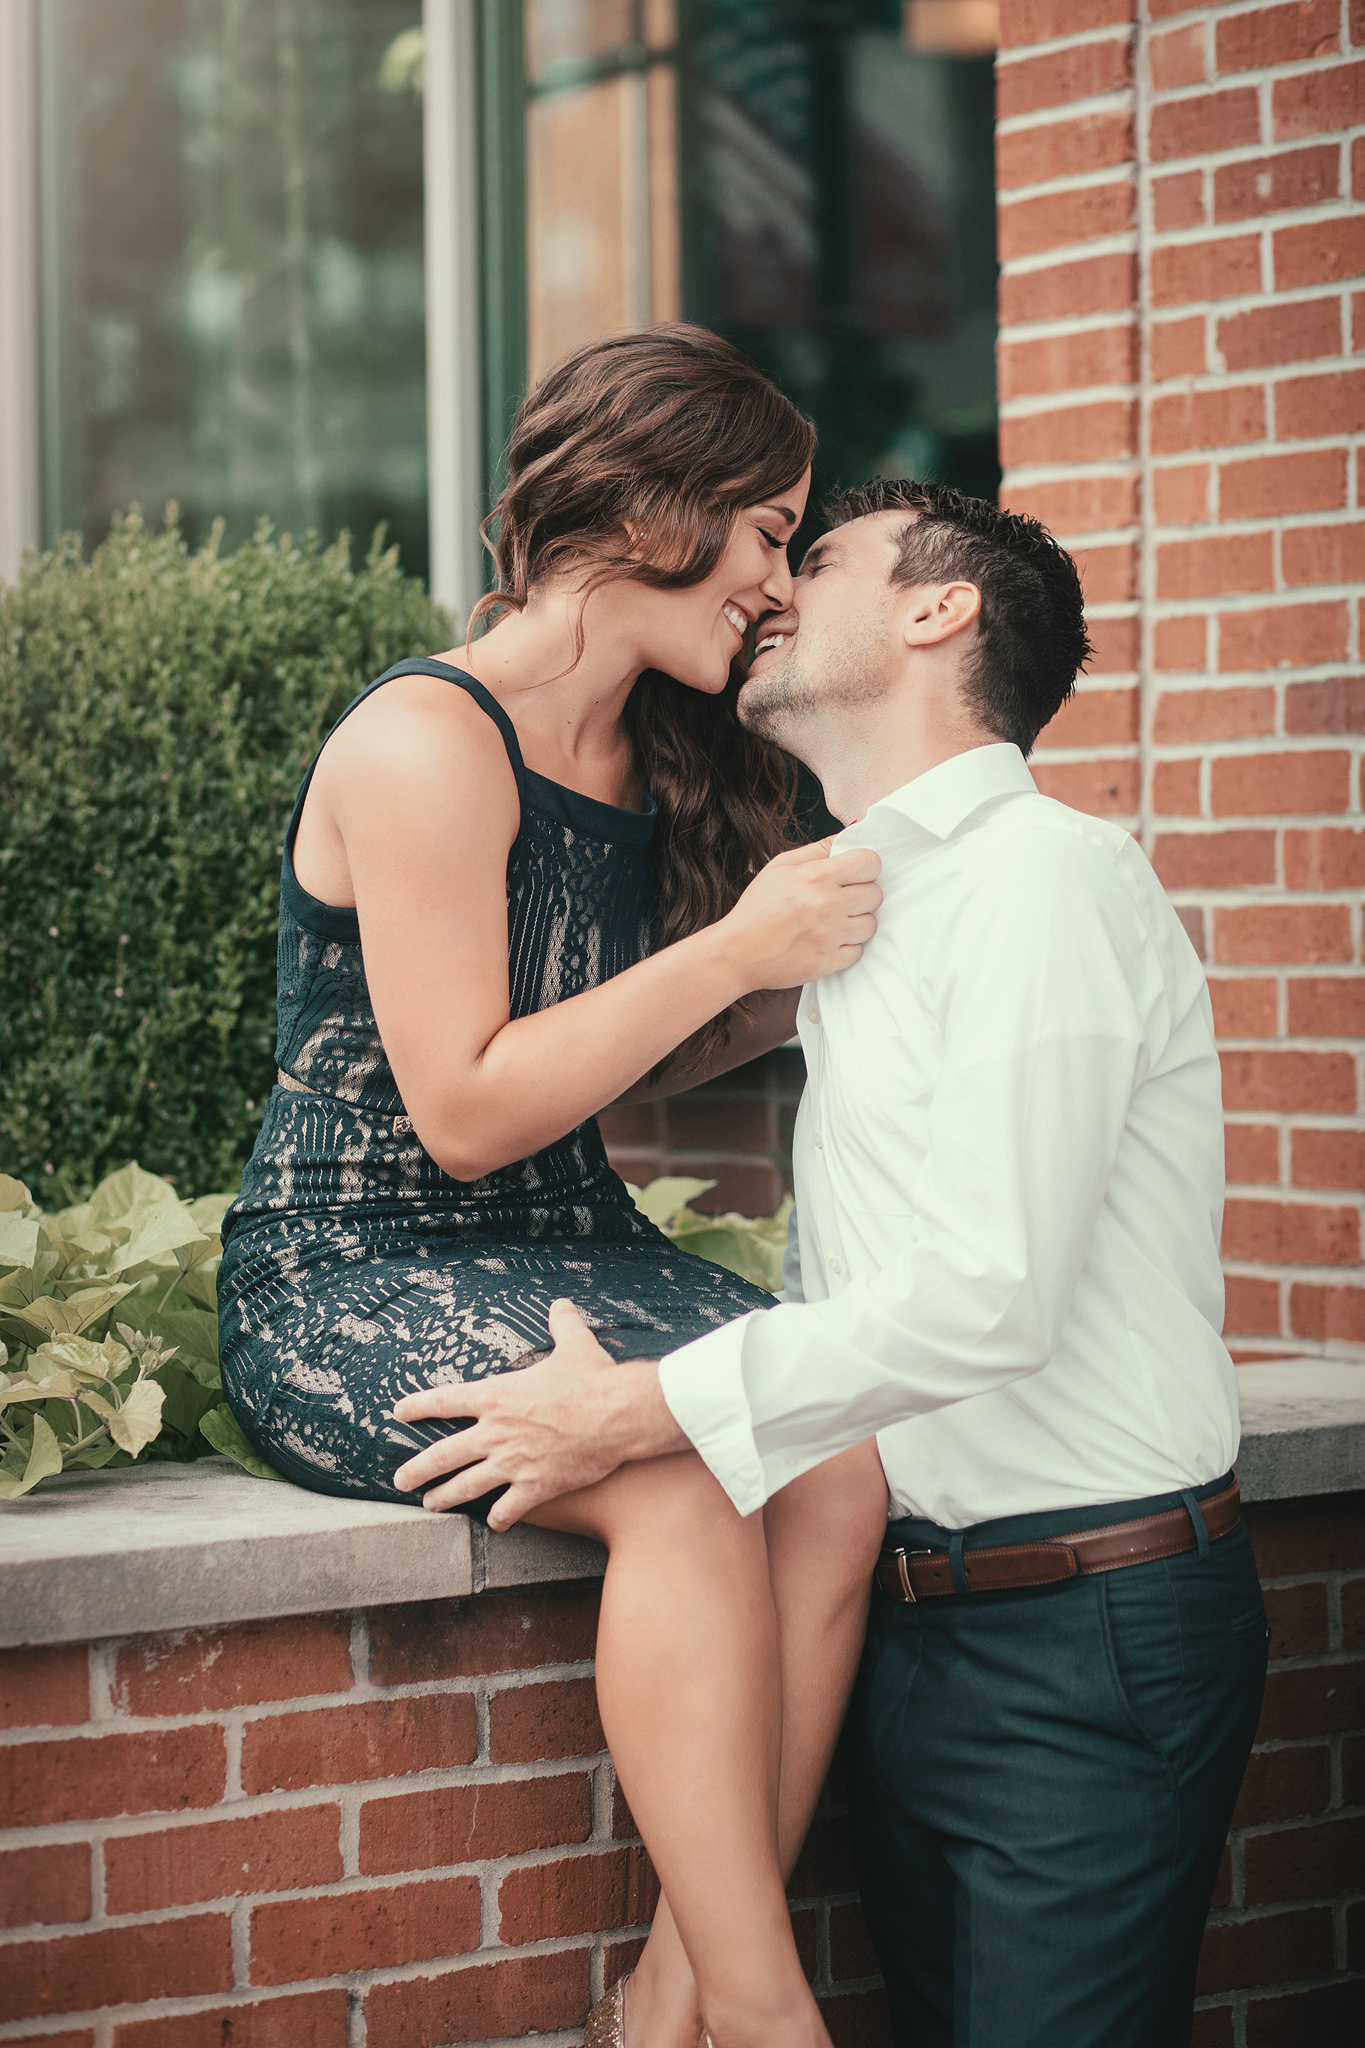 Cincinnati-and-Dayton-OH-Engagement-Session-and-Wedding-photographer-31.jpg